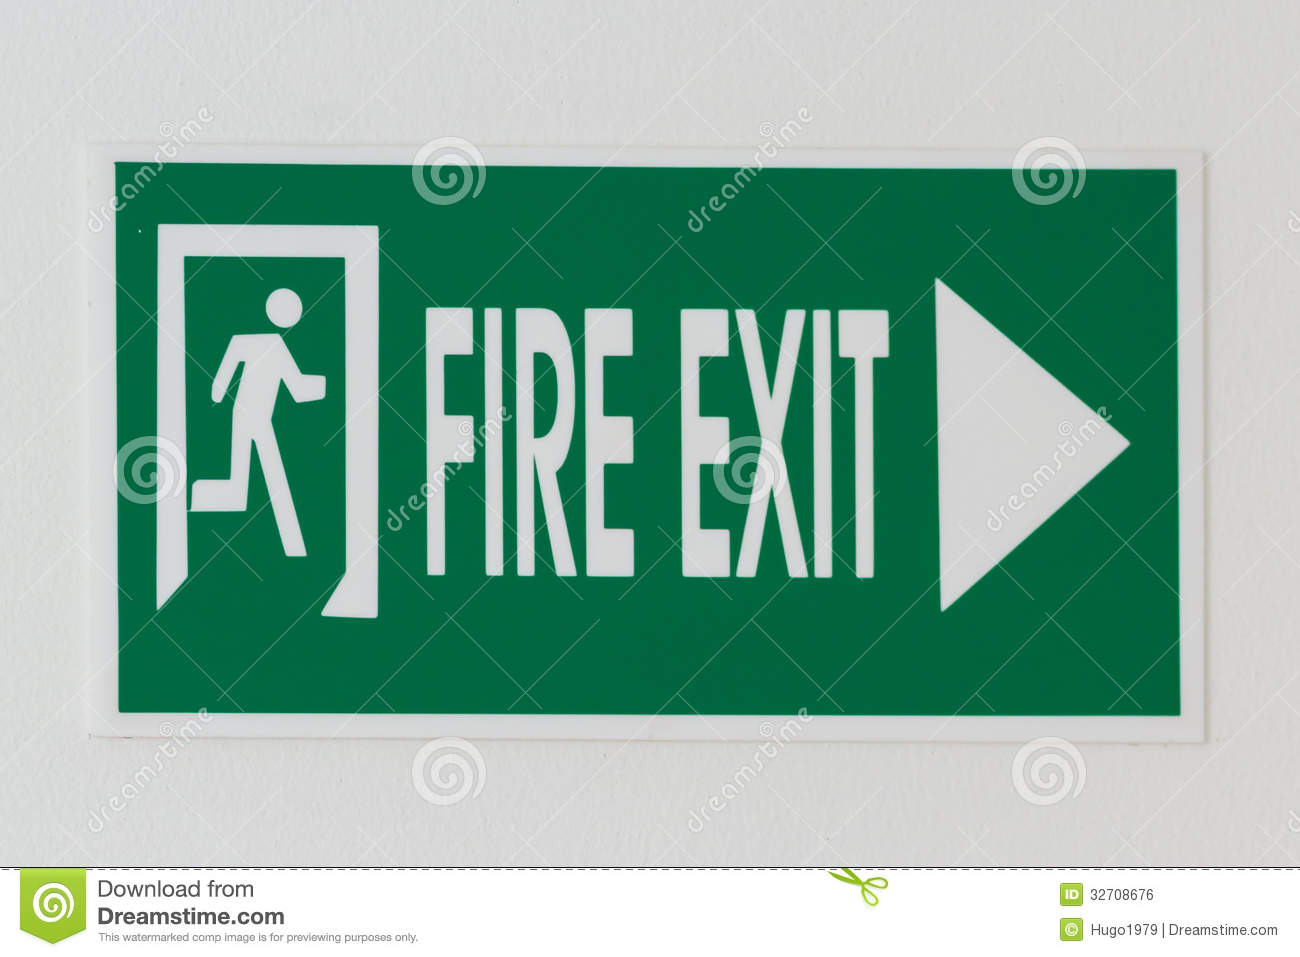 Direction Of Exit Signboard For Emergency Evacuation Purpose